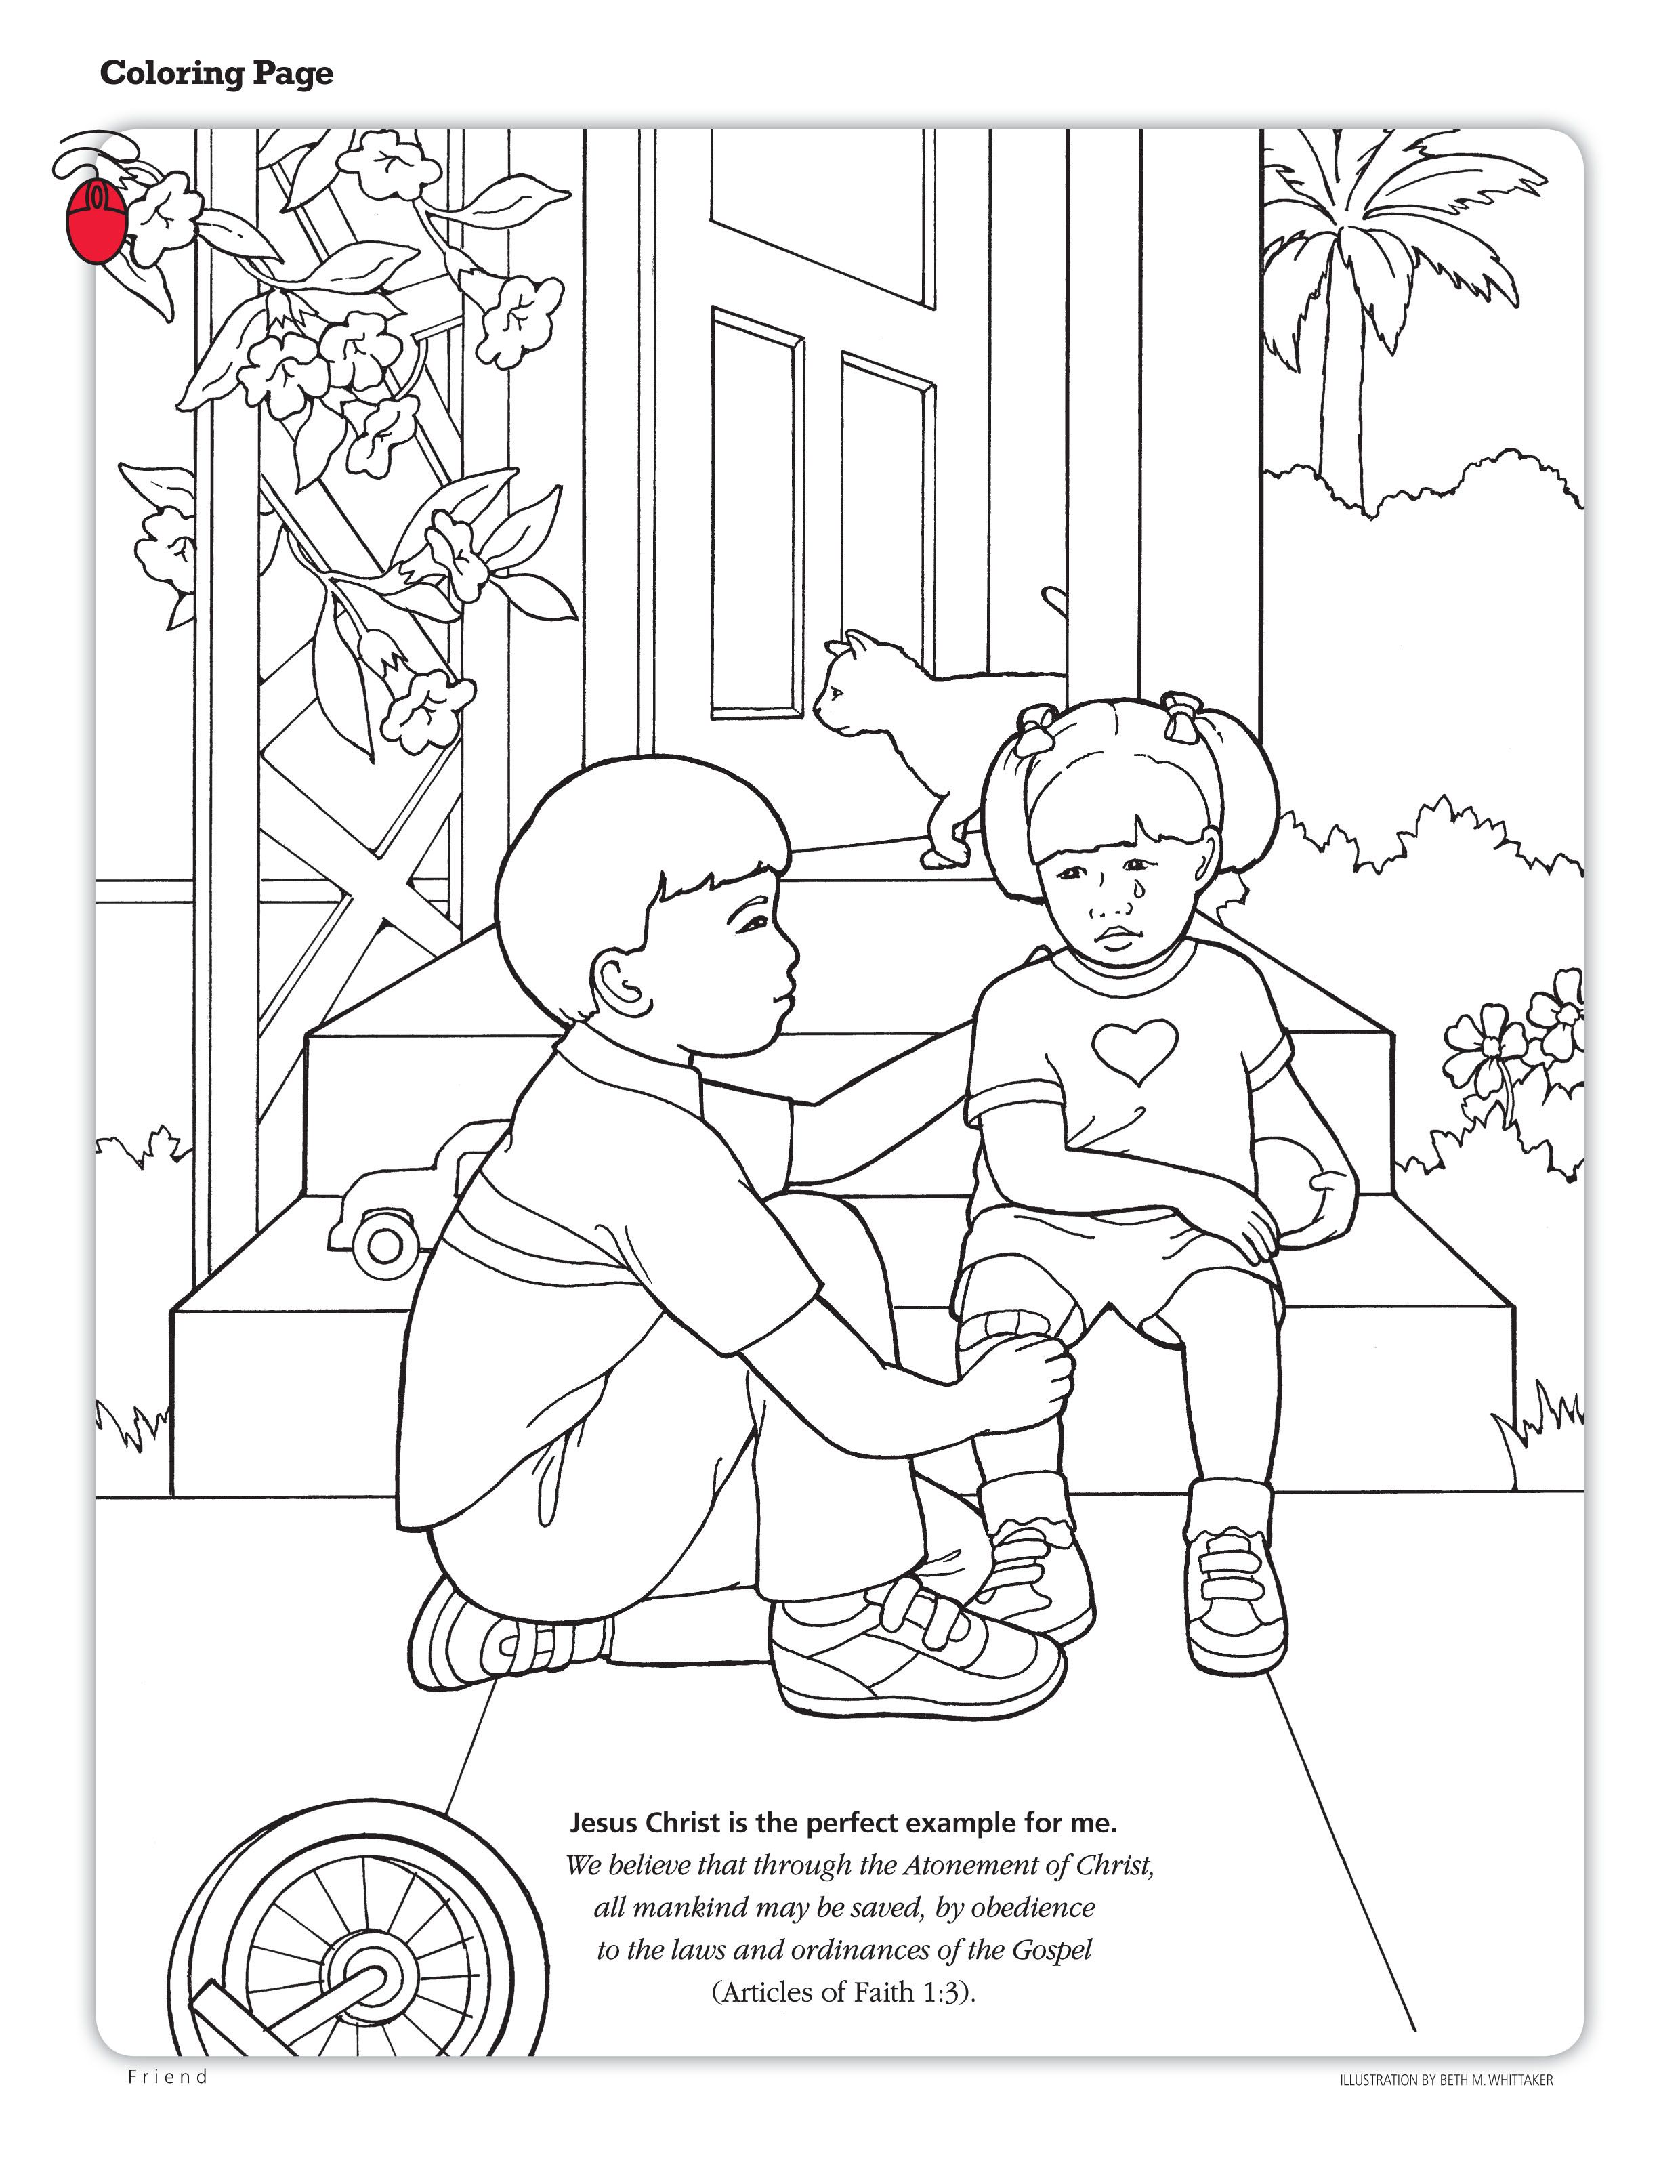 coloring page about the atonement | Lesson 22: The Atonement of ...